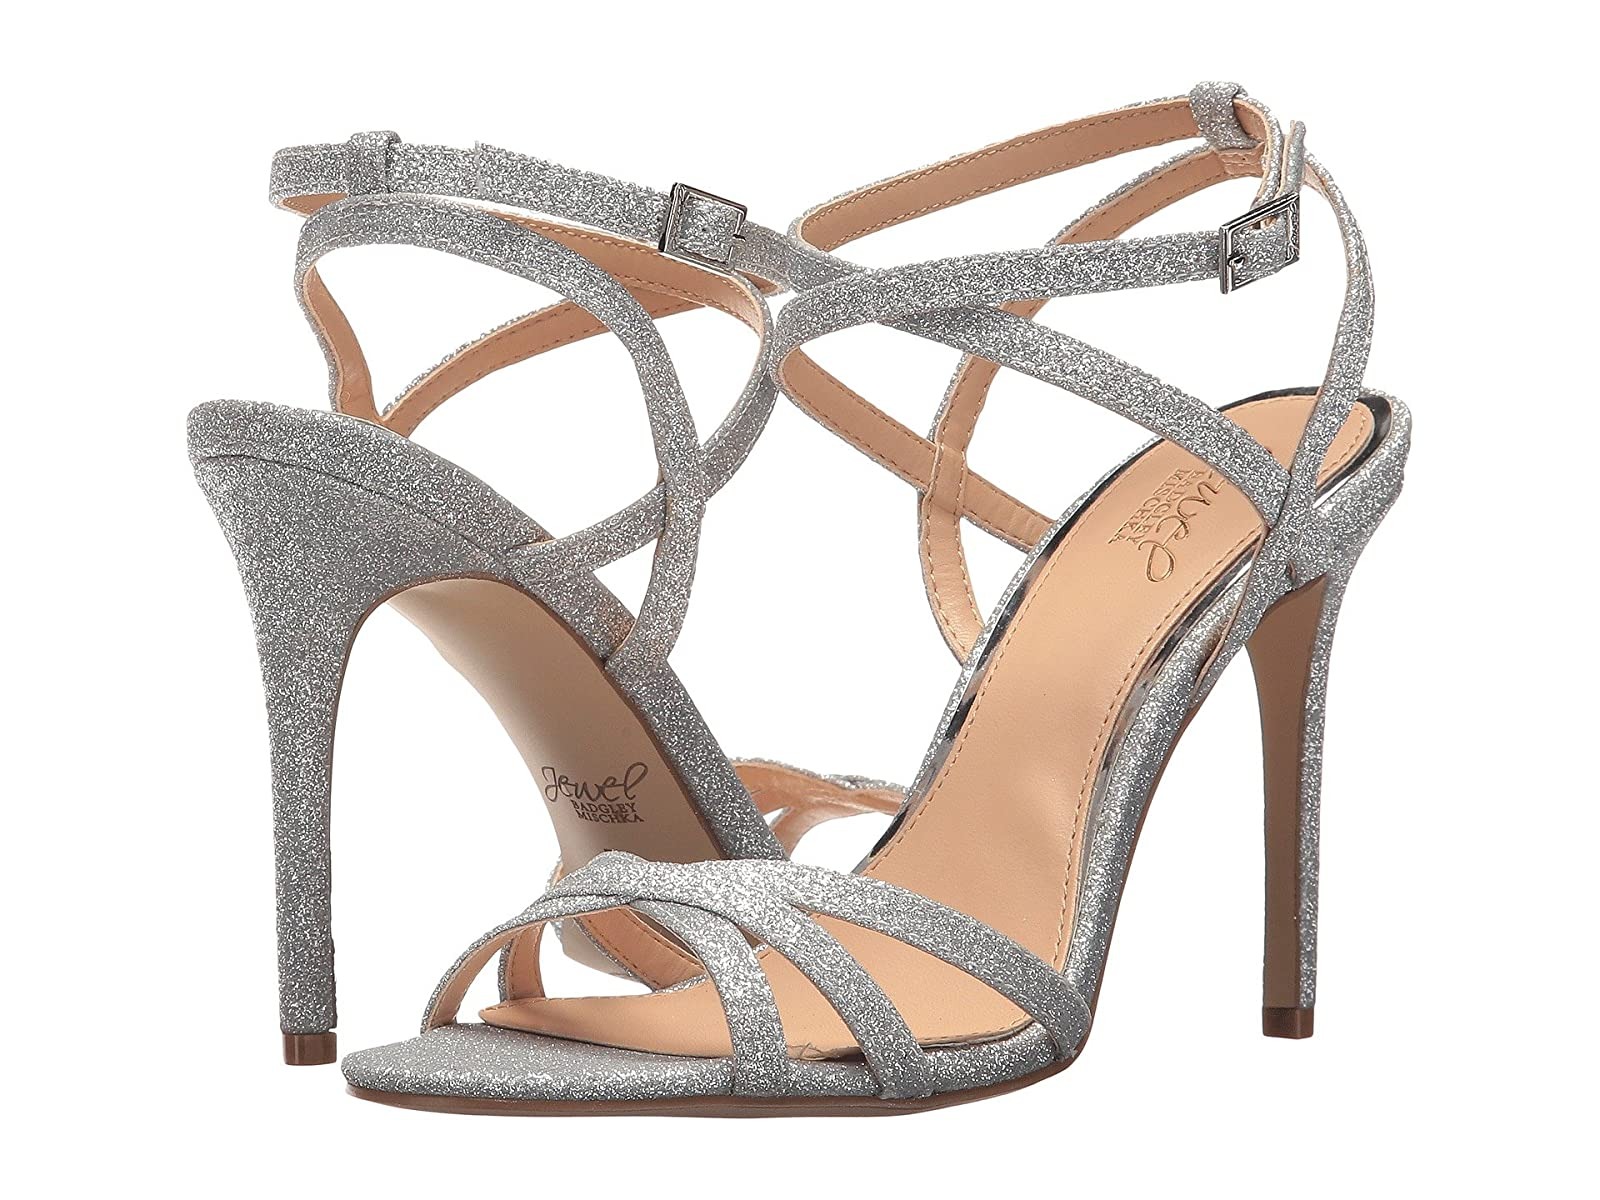 Jewel Badgley Mischka AmbreCheap and distinctive eye-catching shoes